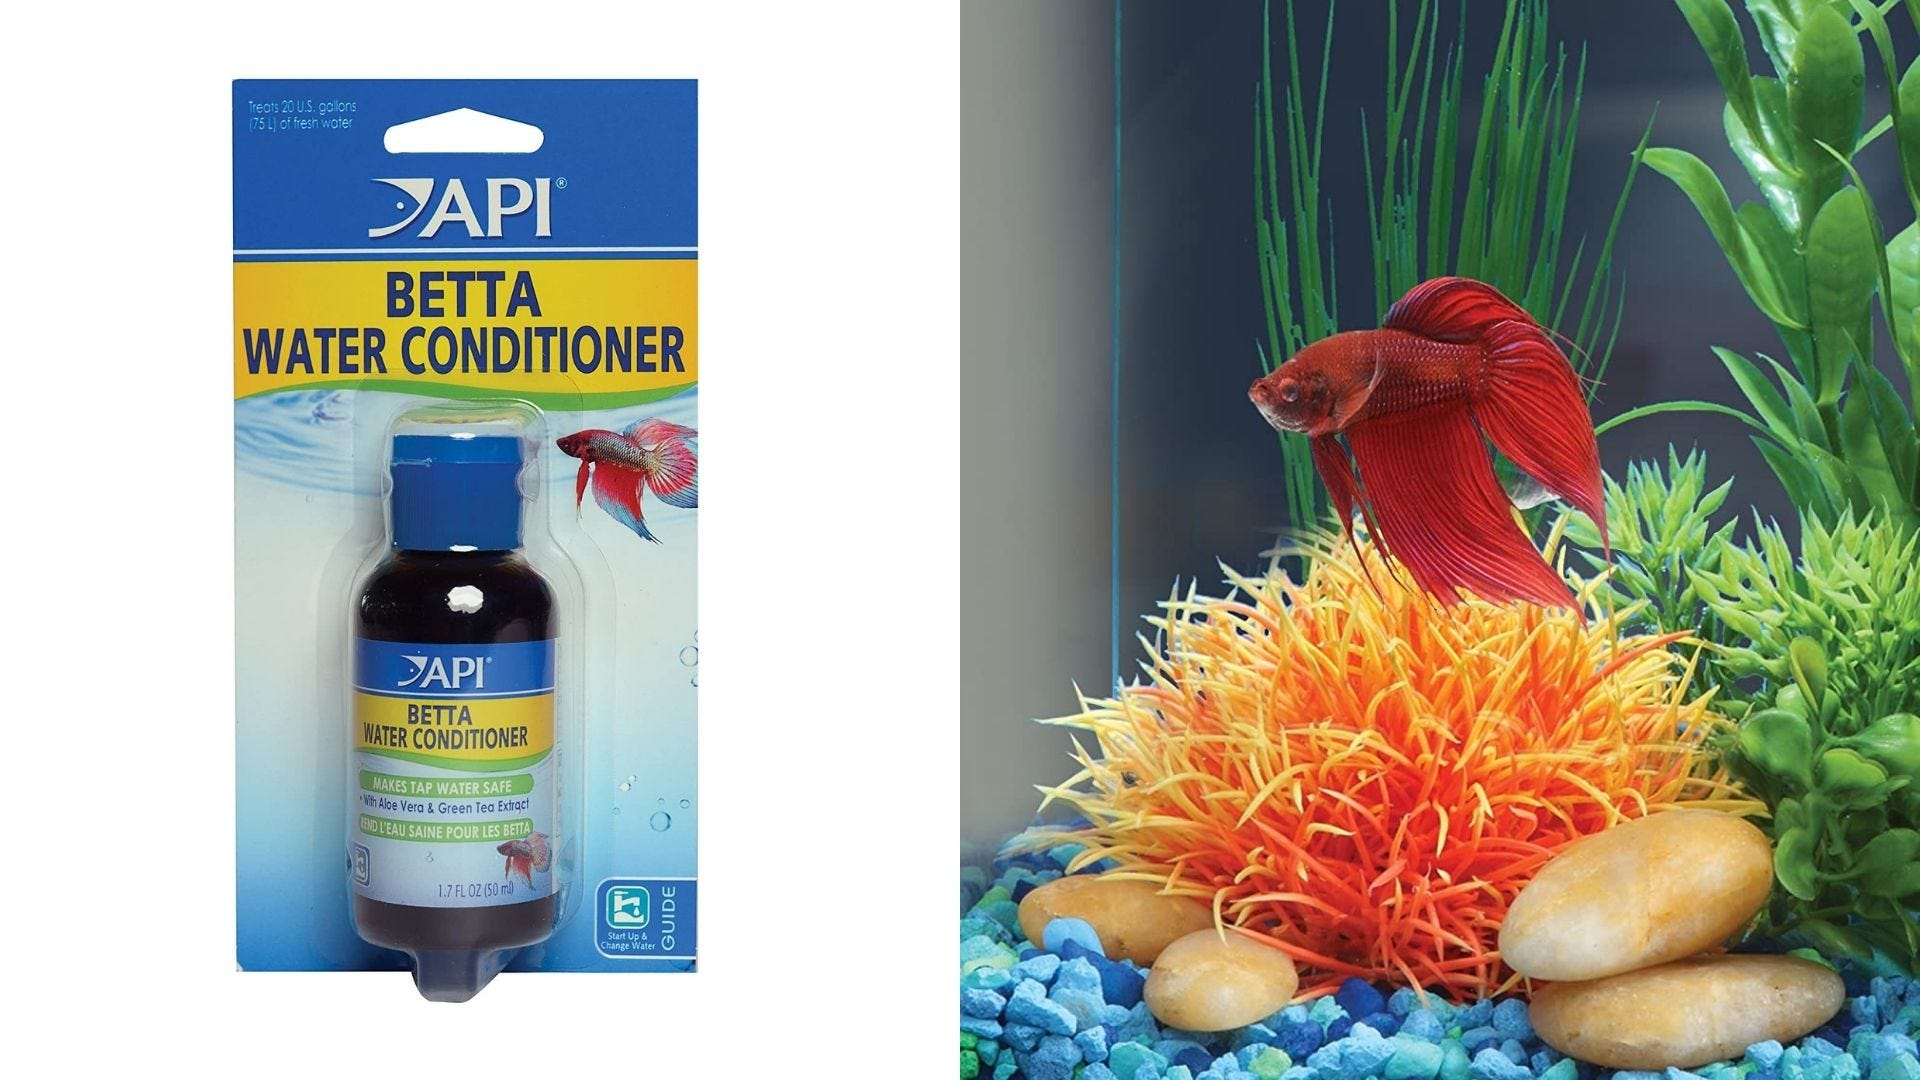 A bottle of water conditioner and a Betta fish swims in an aquarium